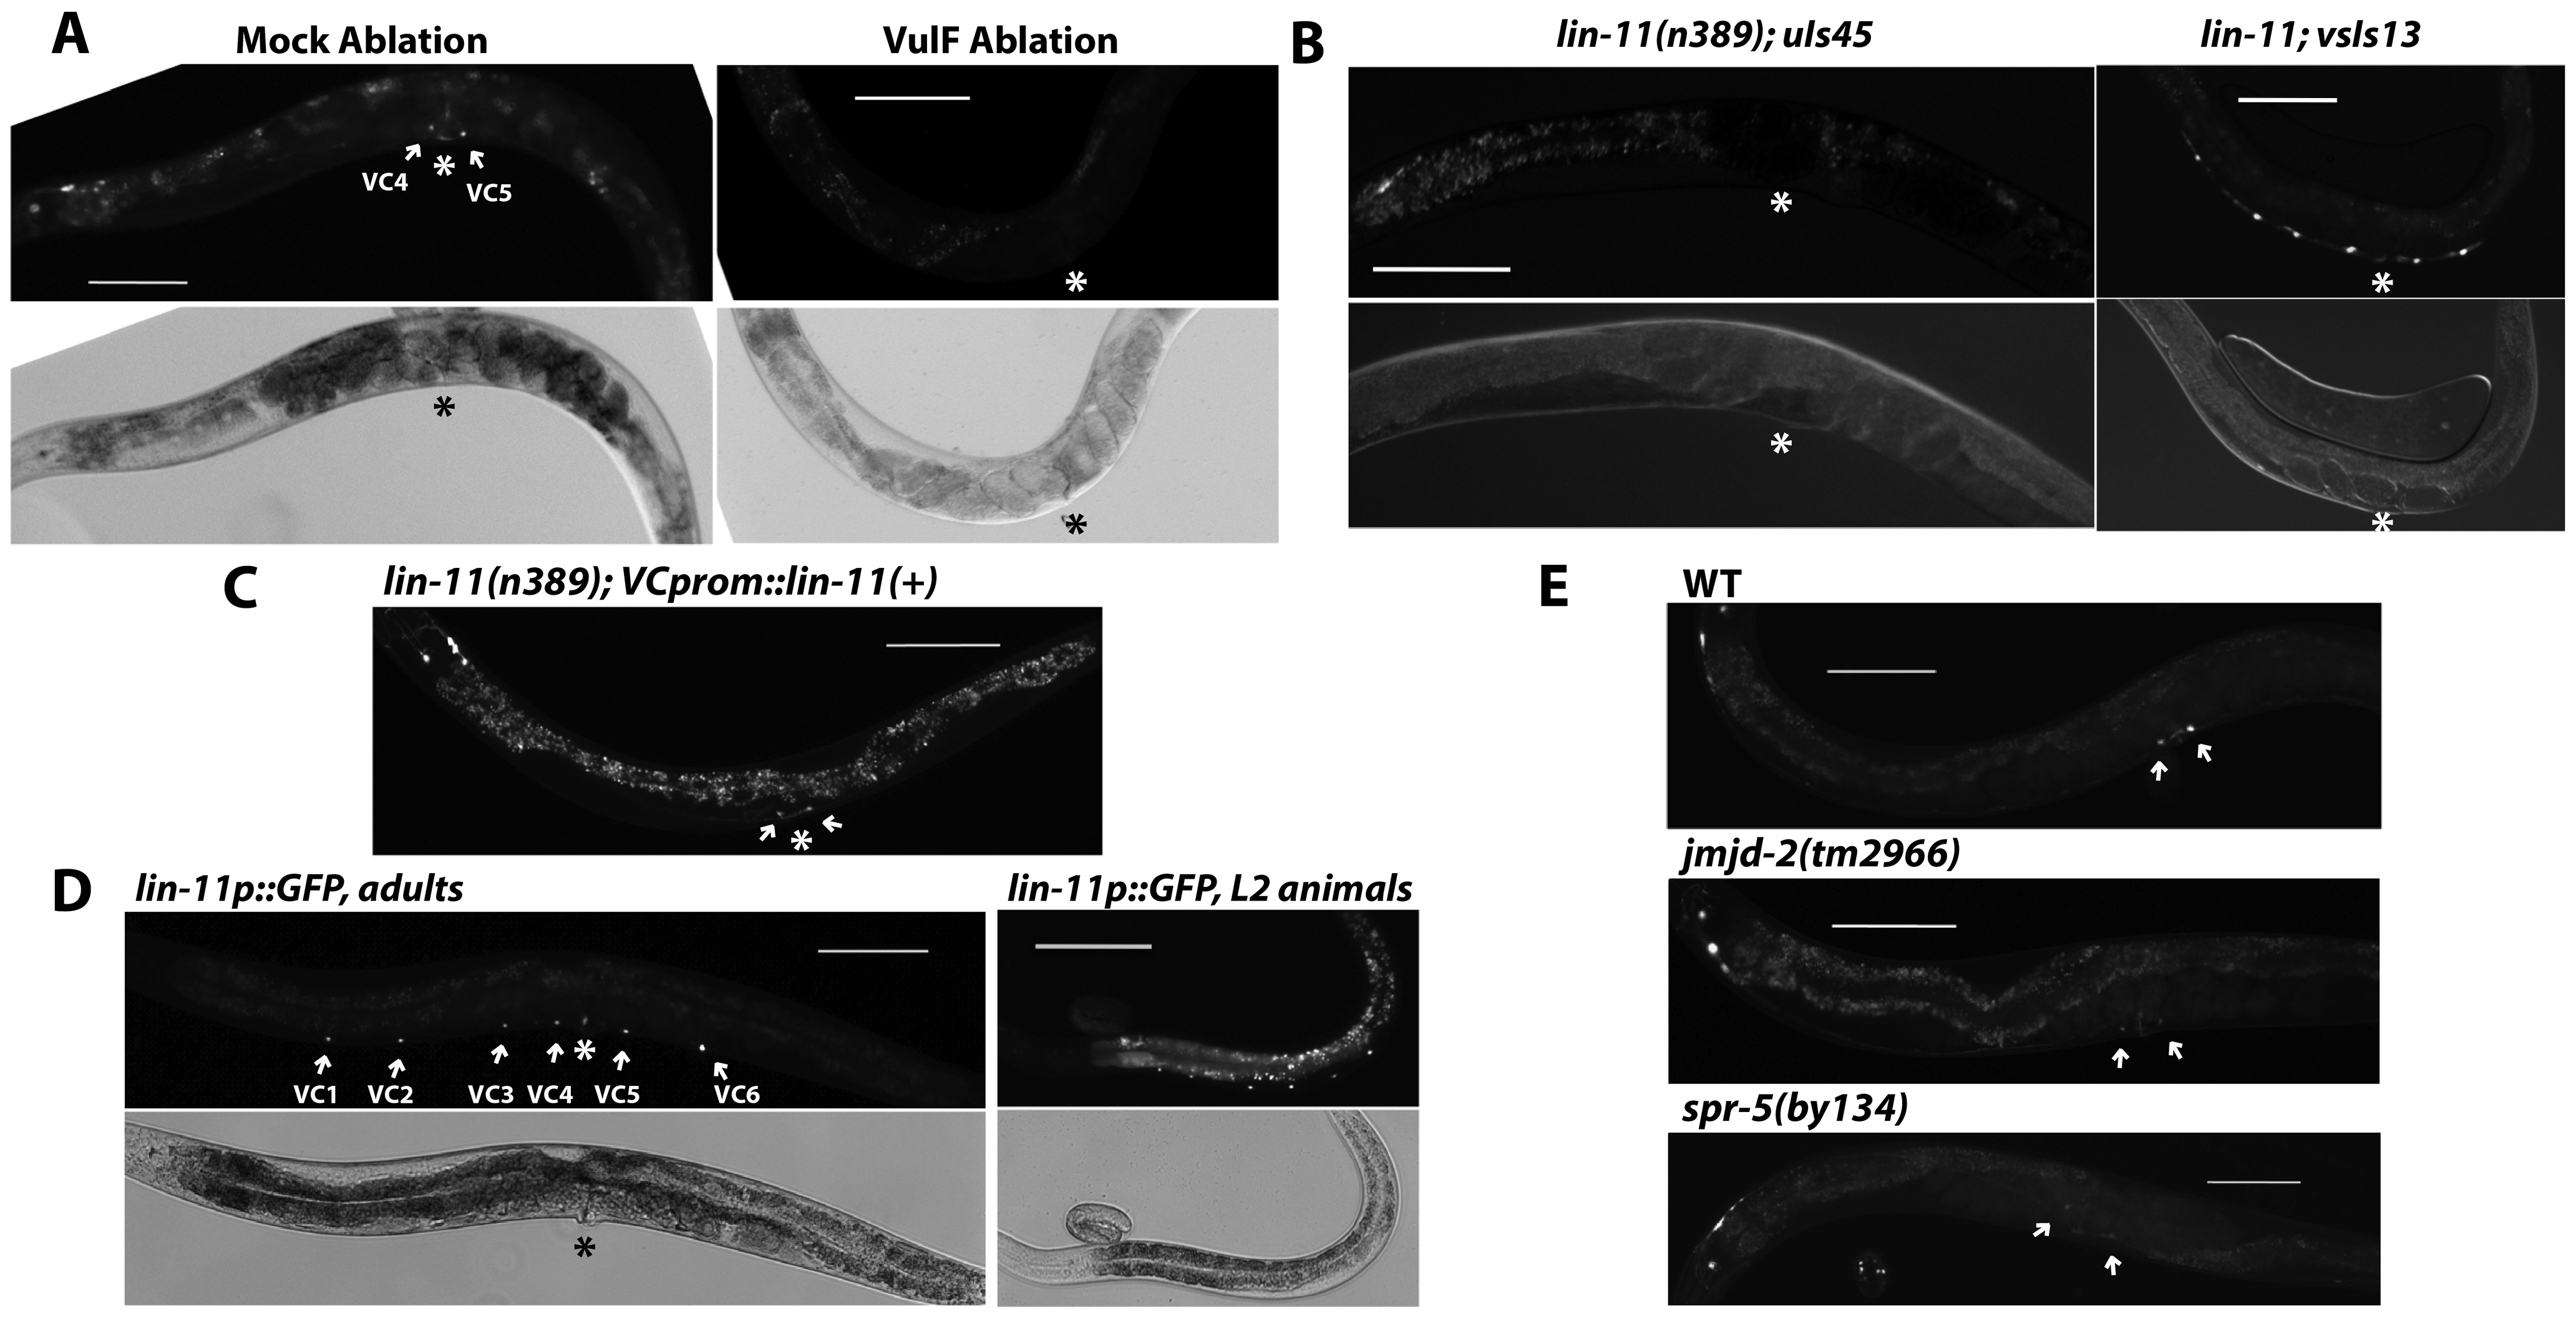 vulF cells, LIN-11, and histone demethylases are required to activate <i>unc-4</i> expression in vulval VC neurons.